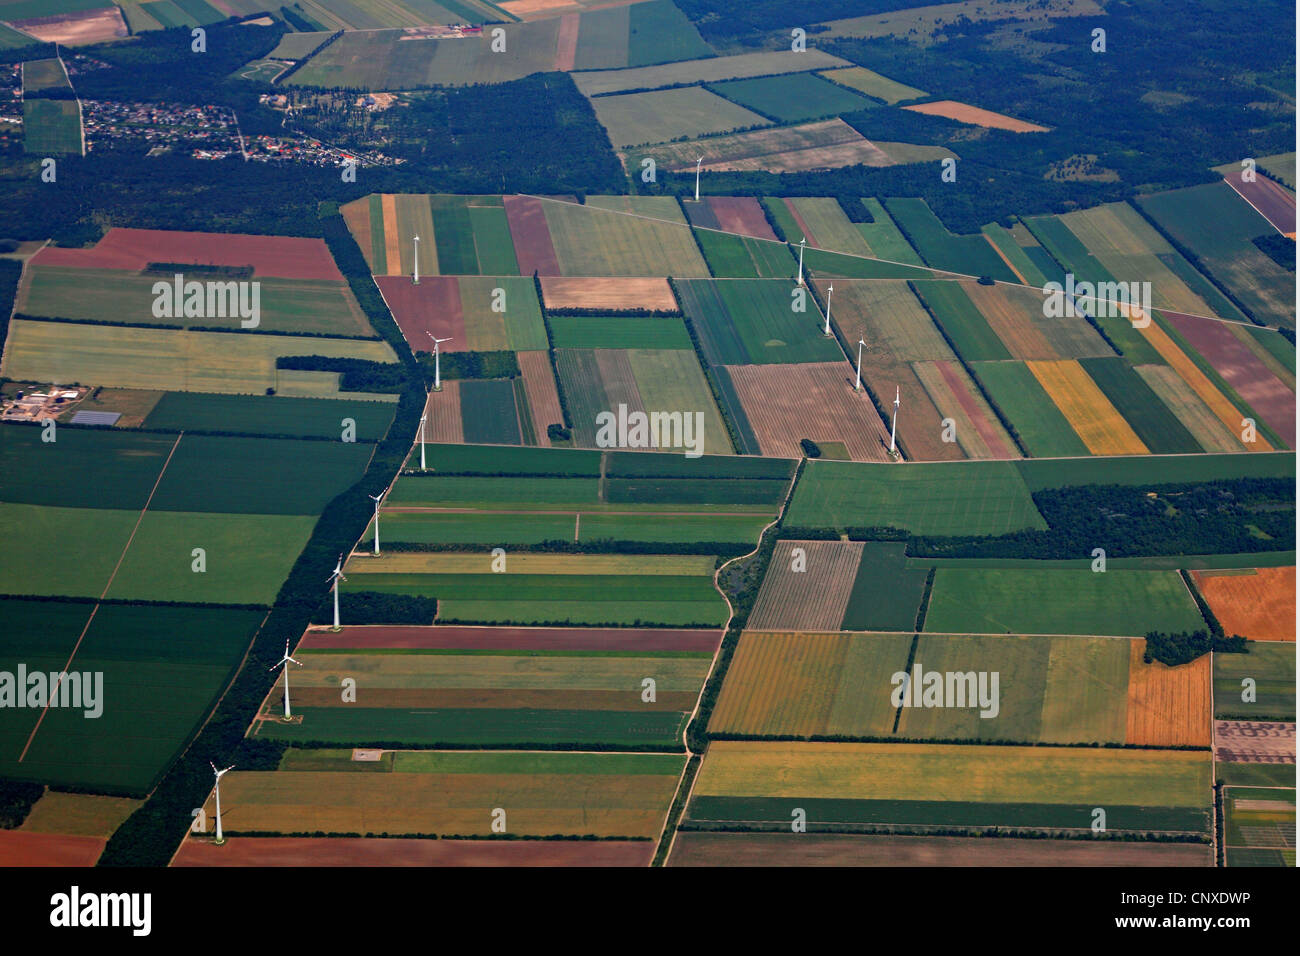 wind power stations in agricultural landscape, Austria, Burgenland - Stock Image